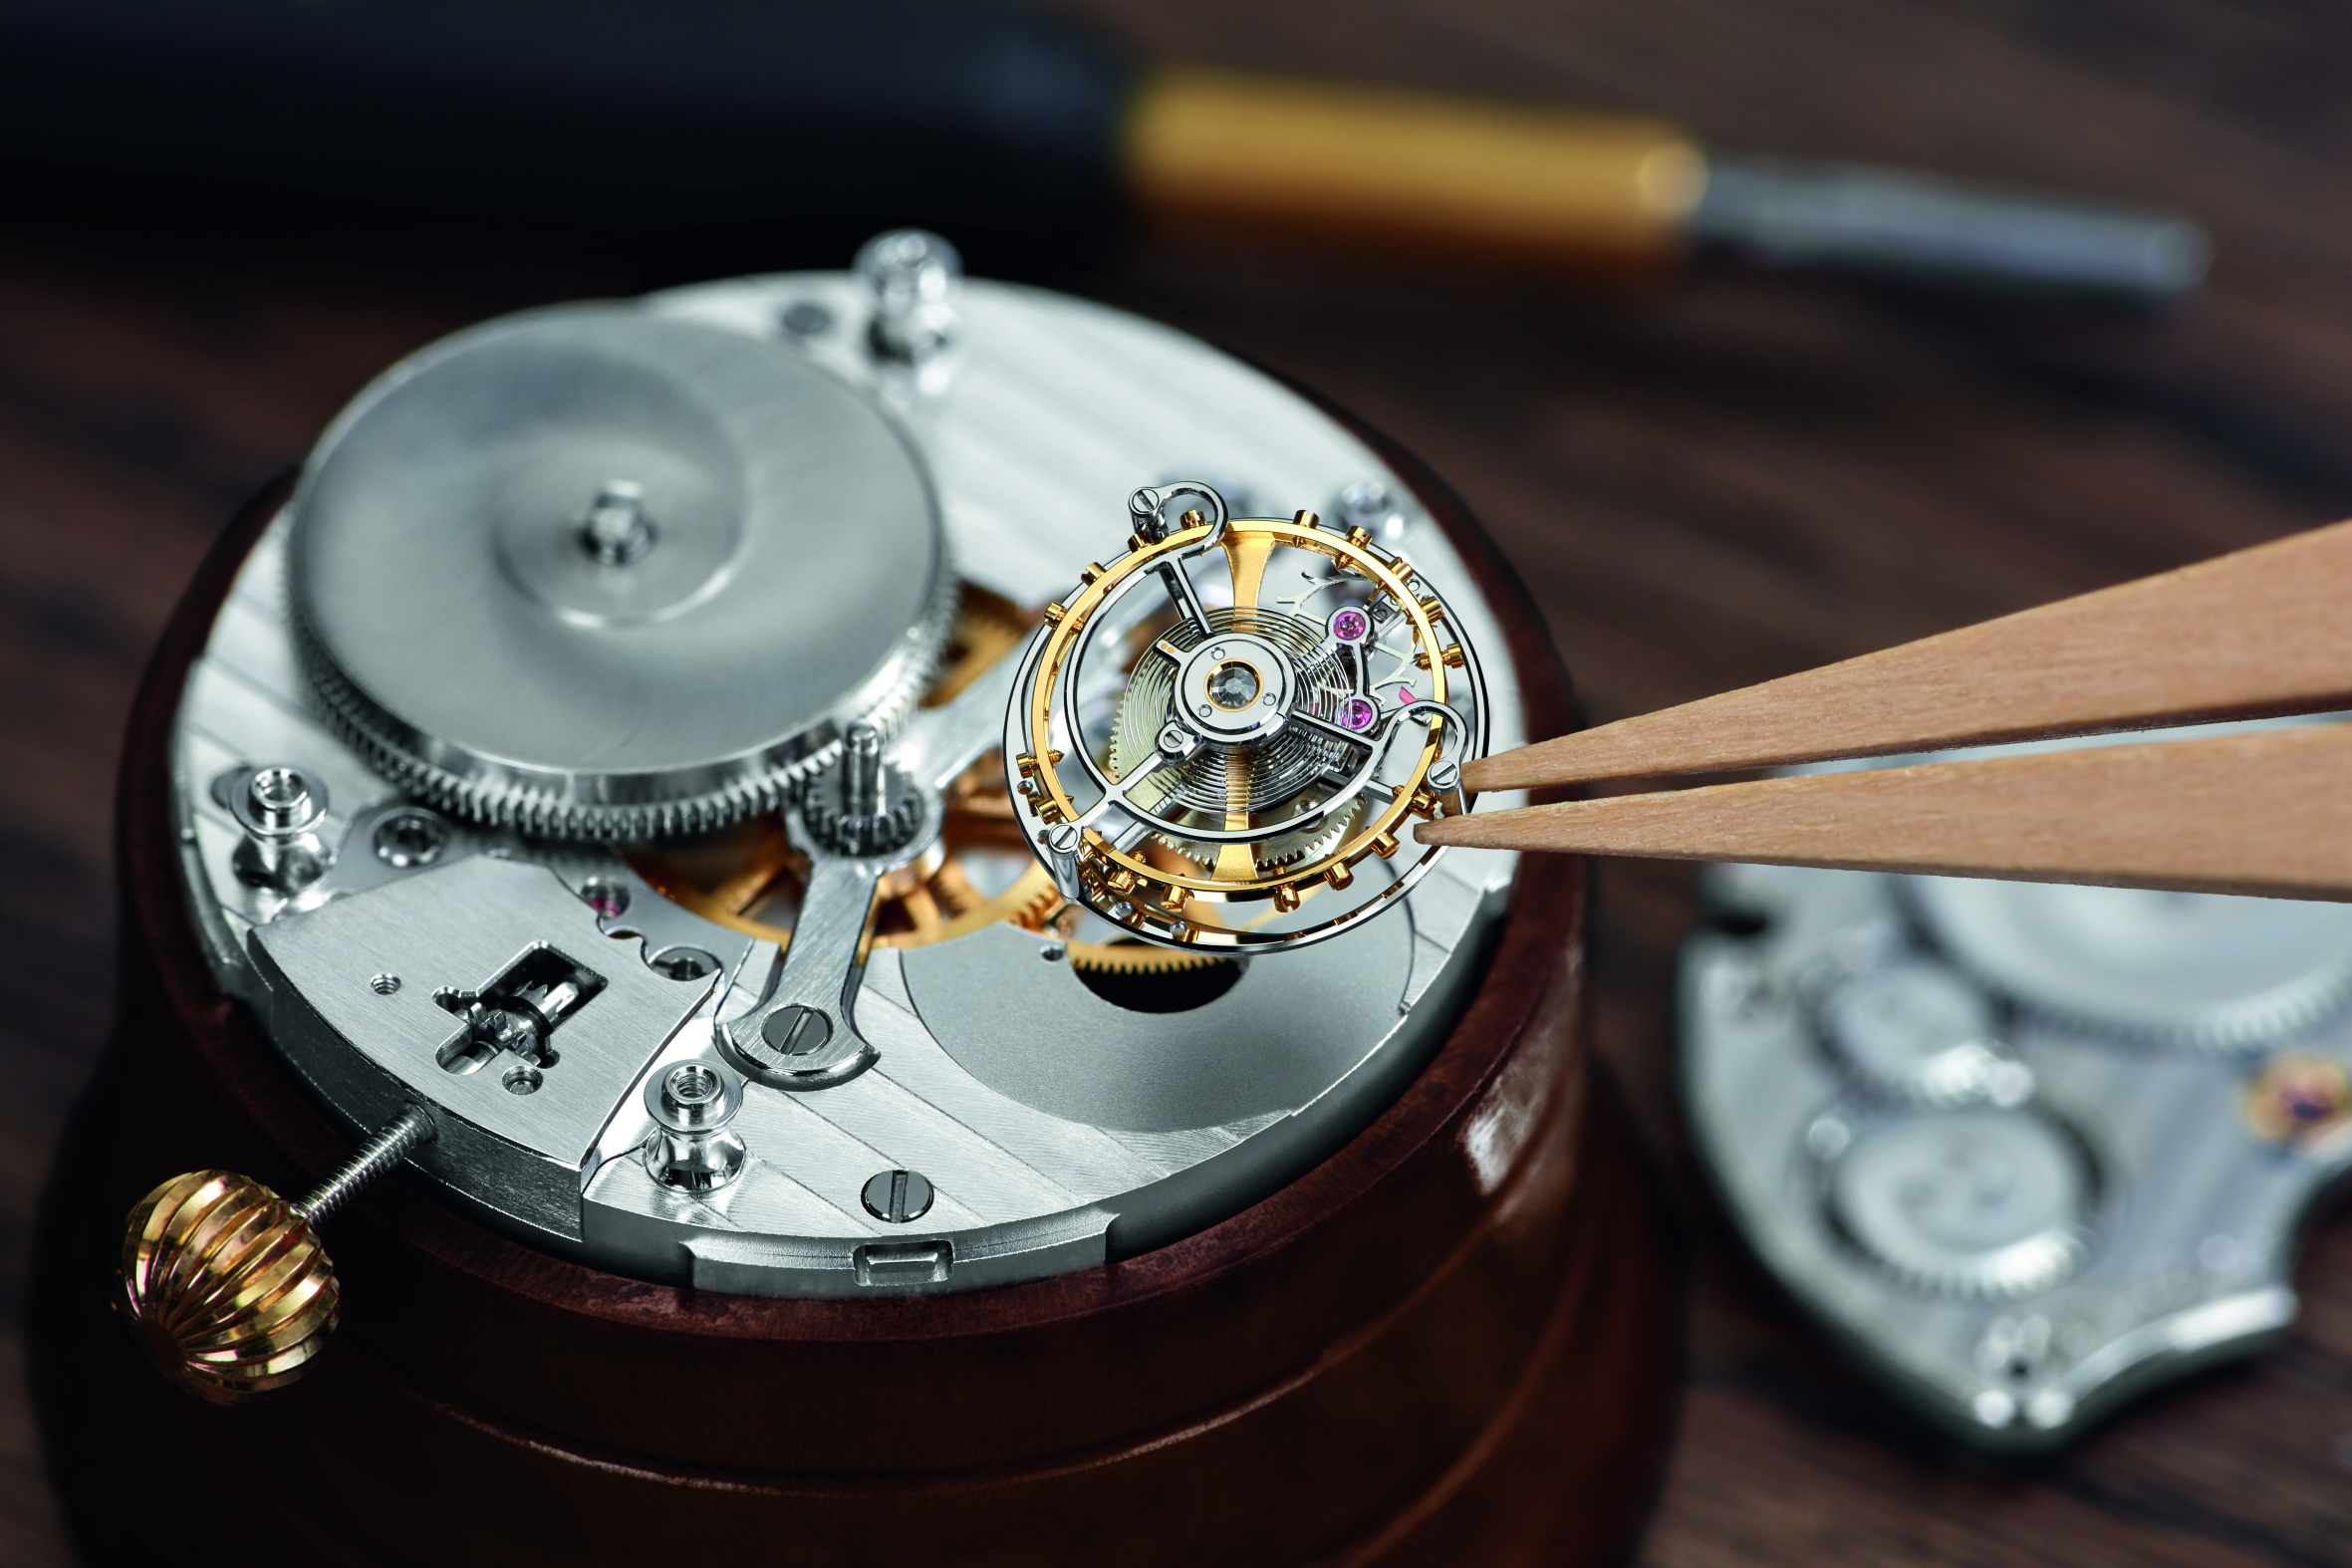 what it takes to make a movement a COSC-certified Chronometer